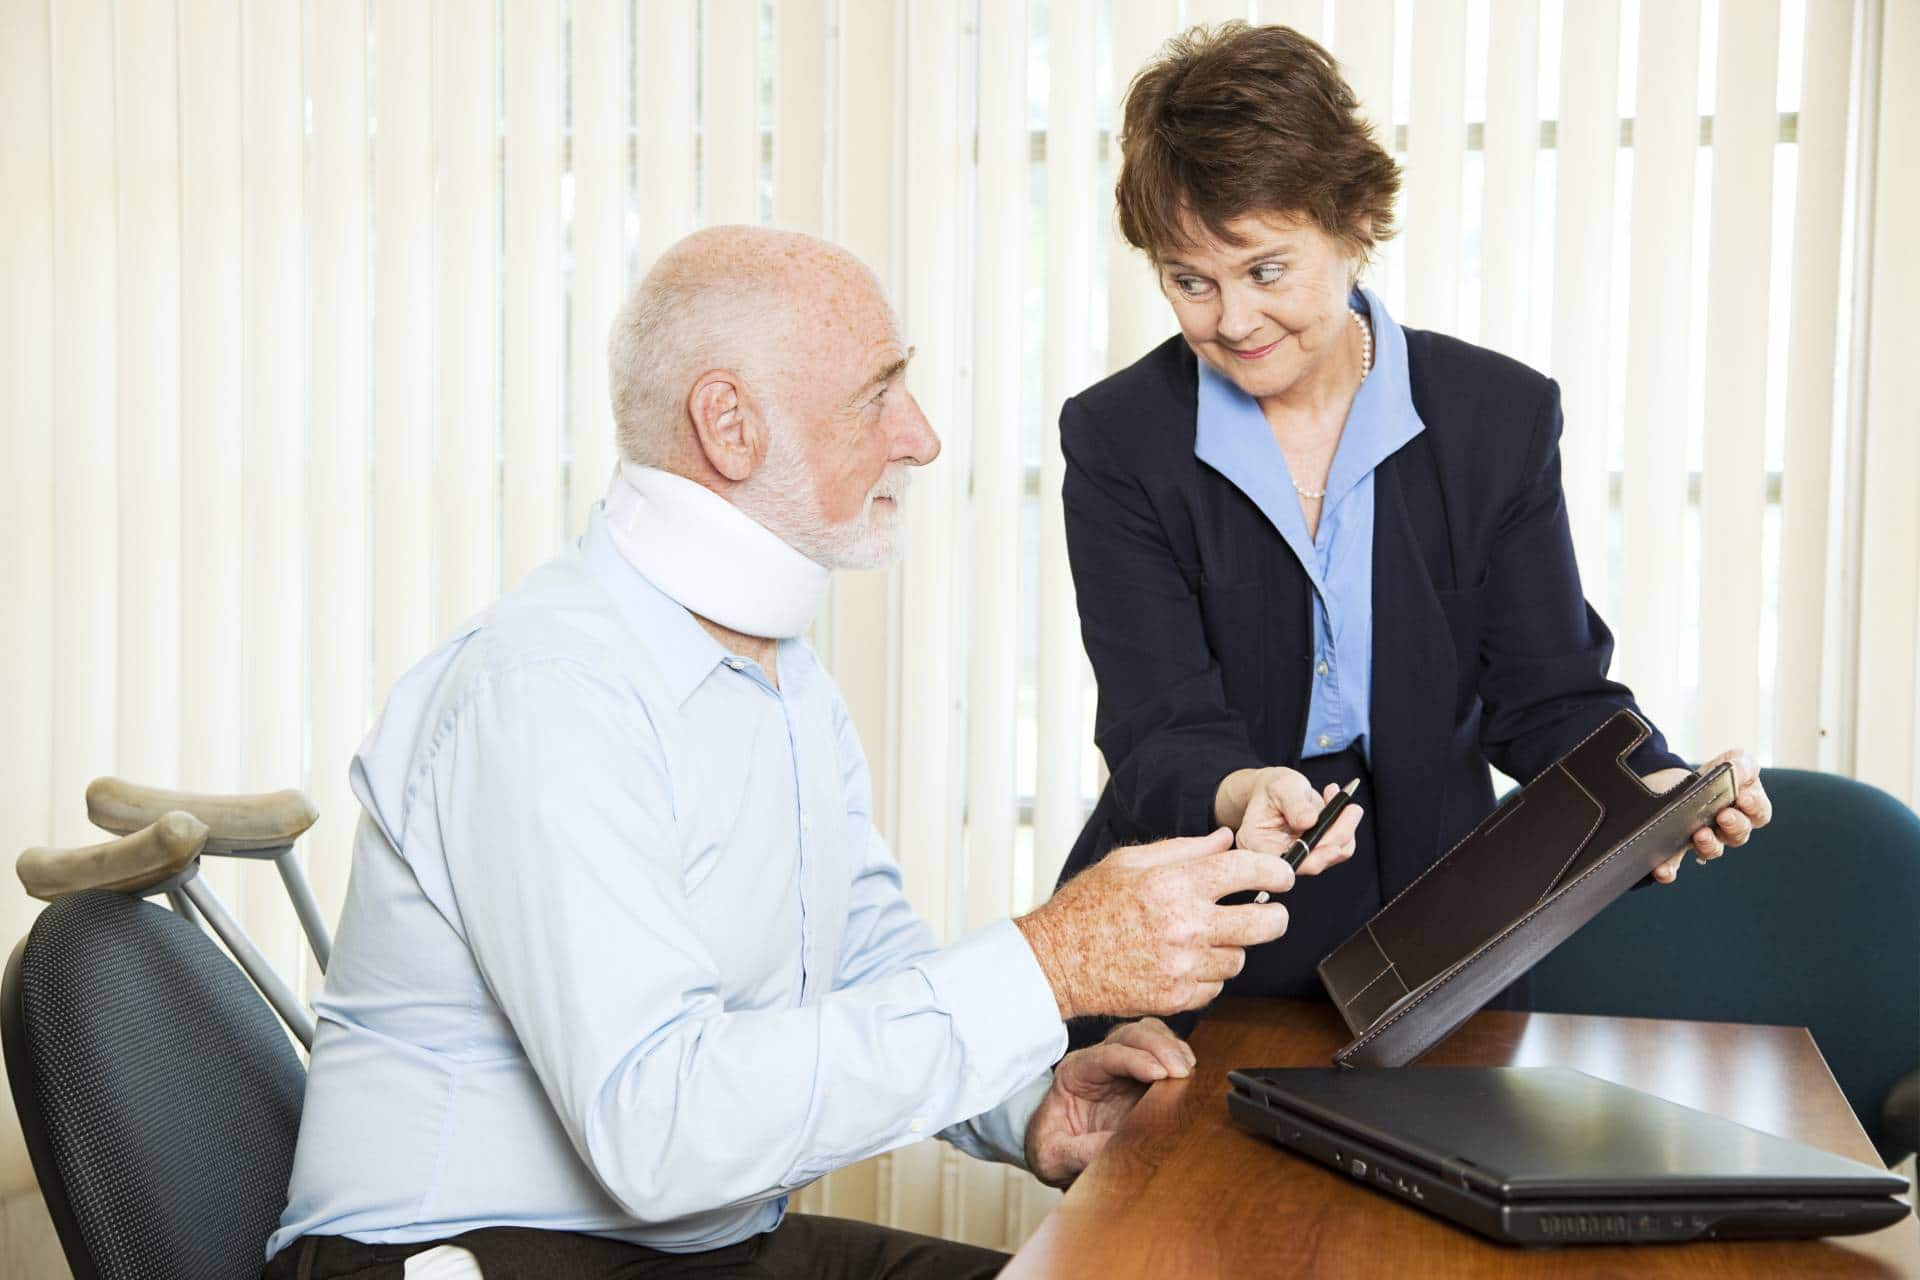 Schedule a free consultation with our personal injury lawyers at the Angell Law Firm in North Buckhead, Ga.